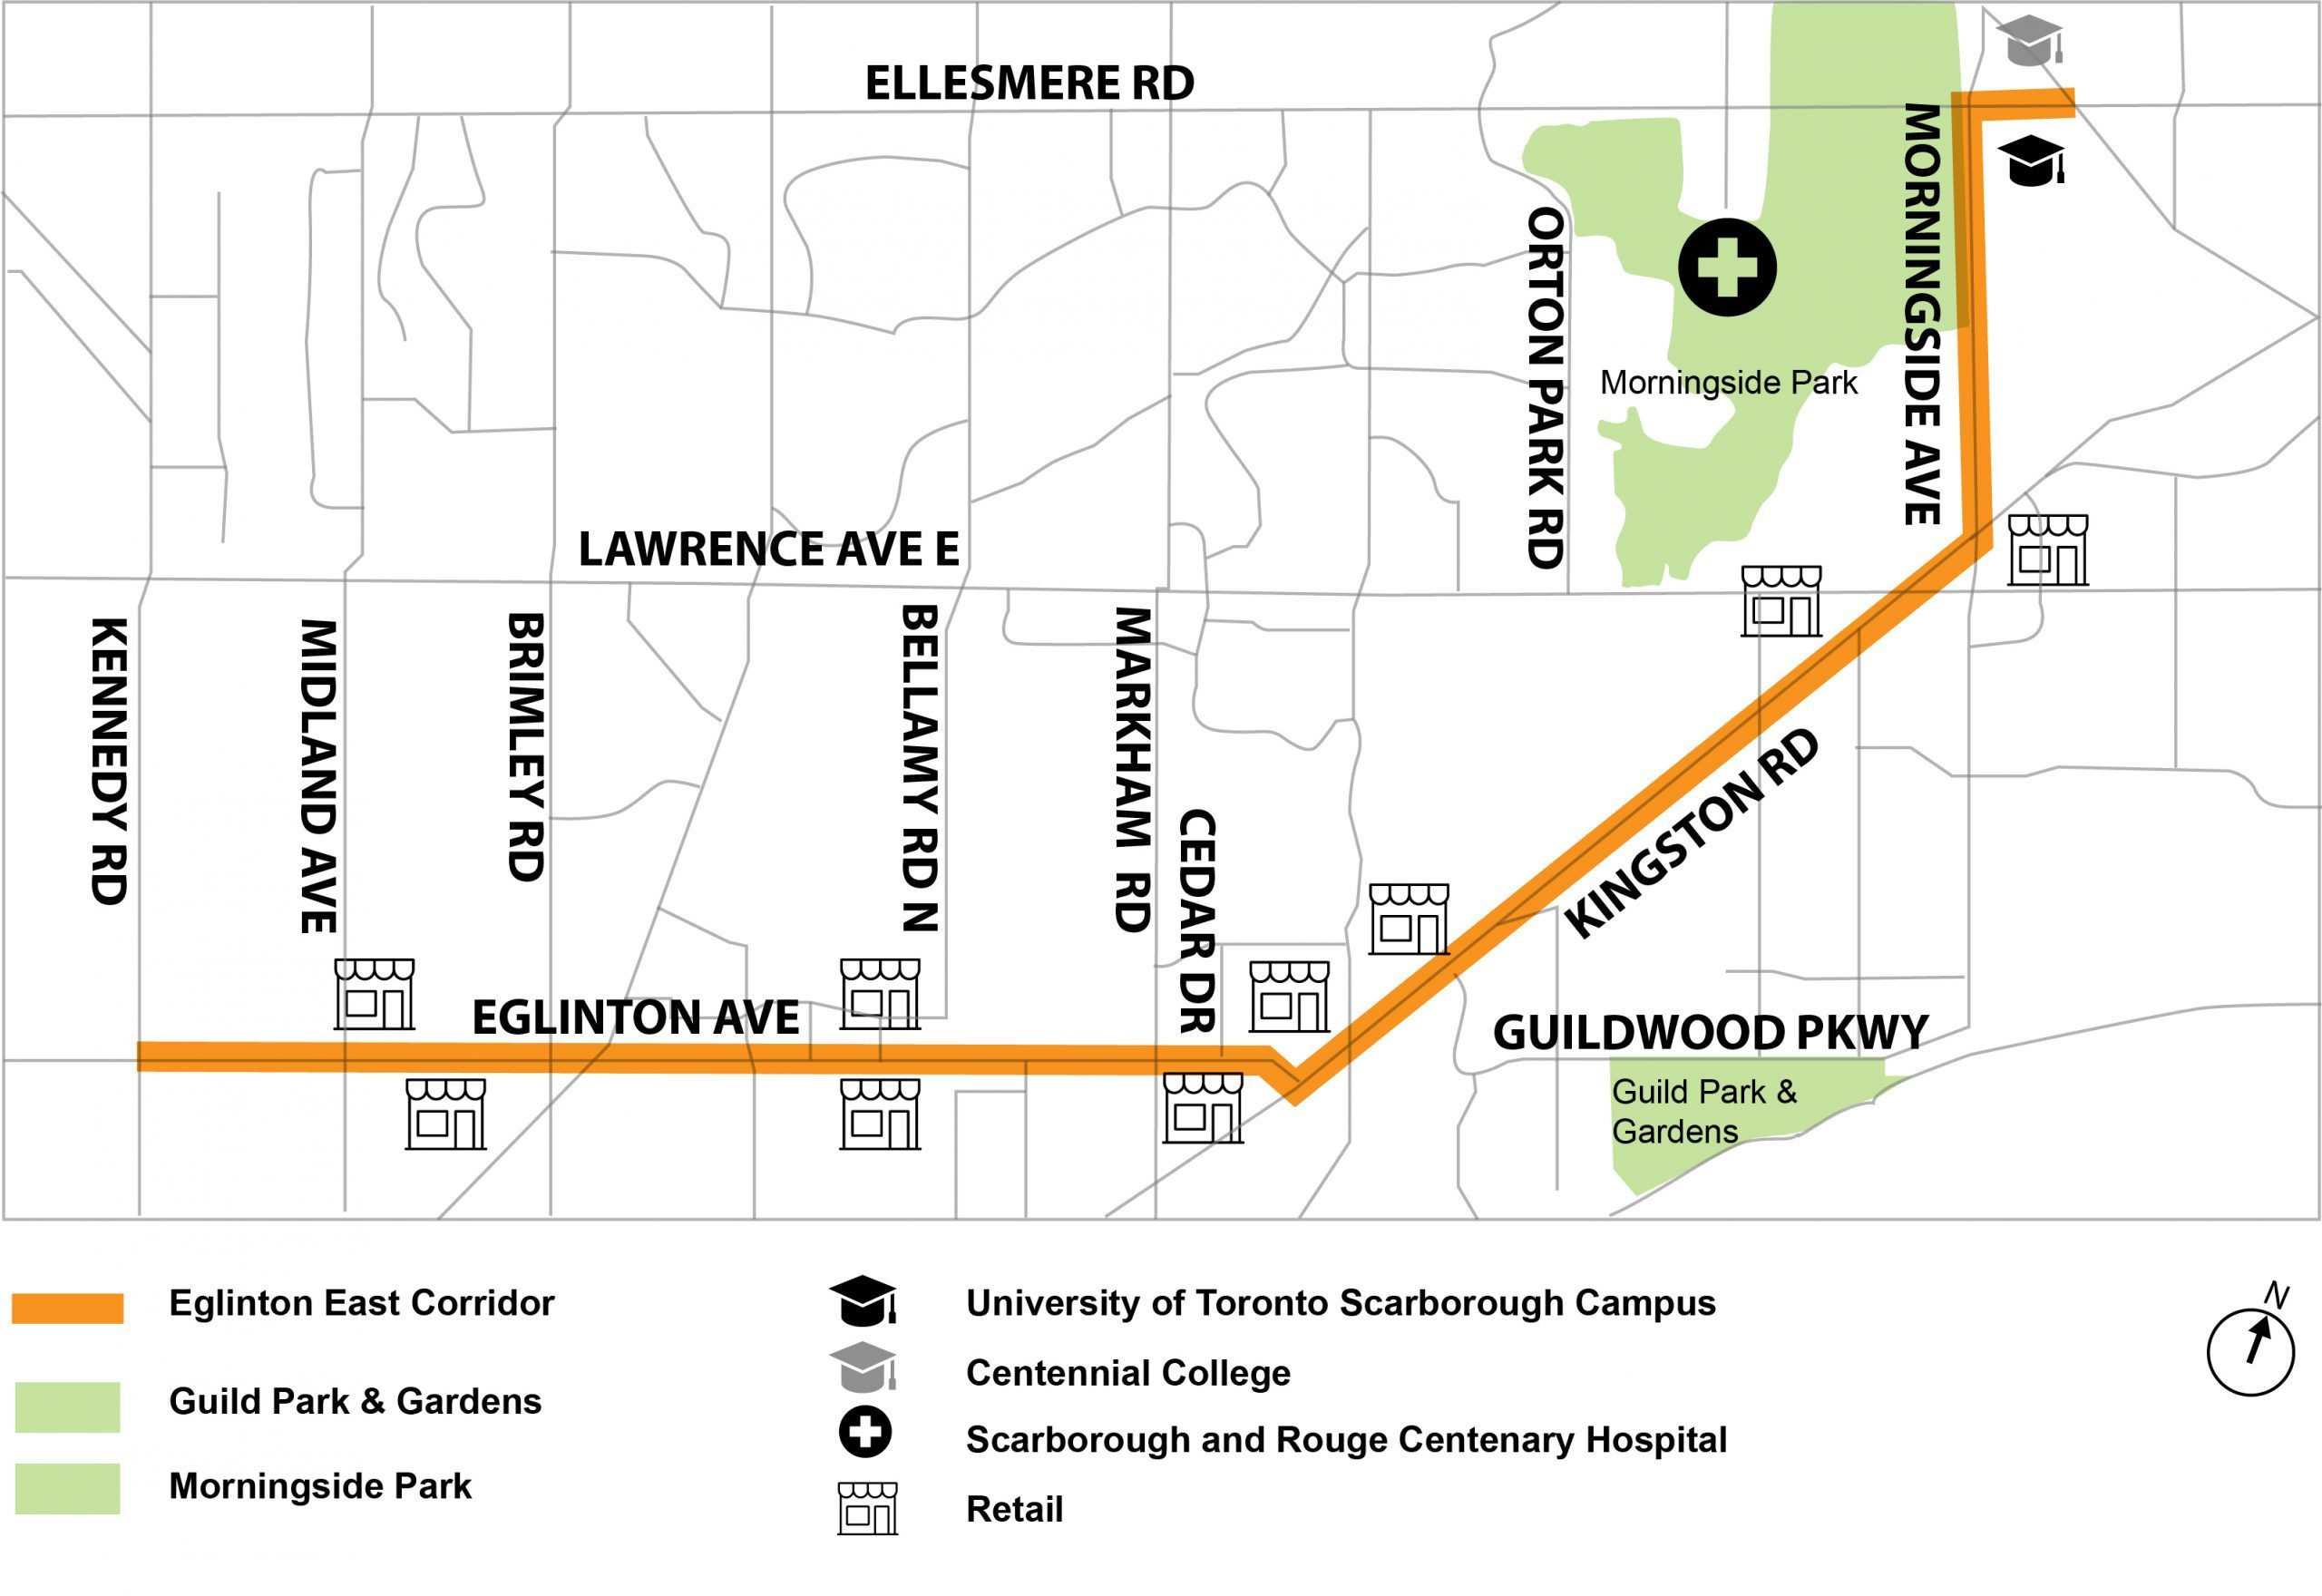 Map of the 8.5-kilometre Eglinton East corridor which runs along Eglinton Avenue East, Kingston Road and Morningside Avenue from Brimley Road, through to the University of Toronto Scarborough Campus.